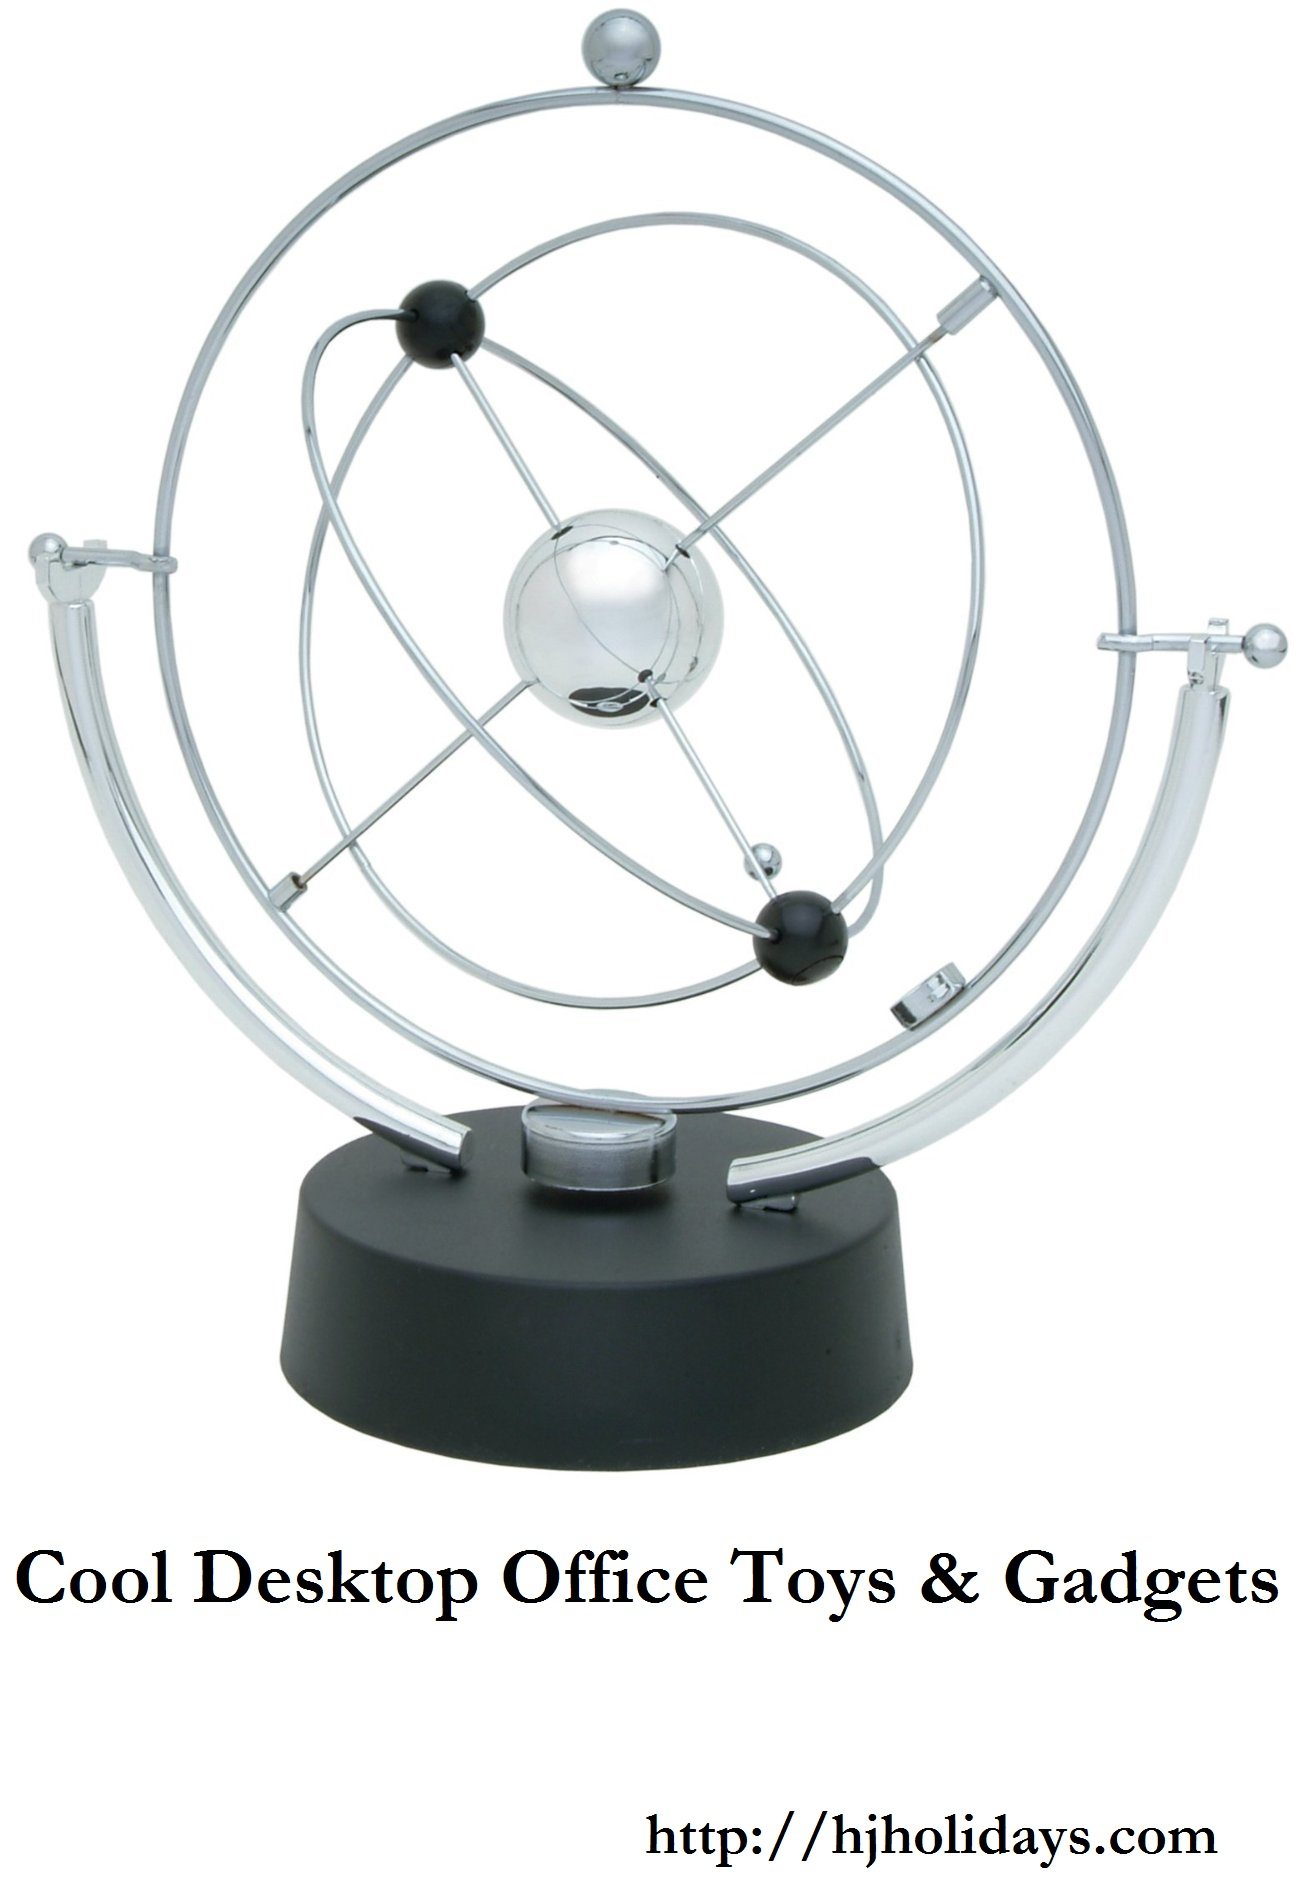 Cool Desktop Office Toys and Gadgets